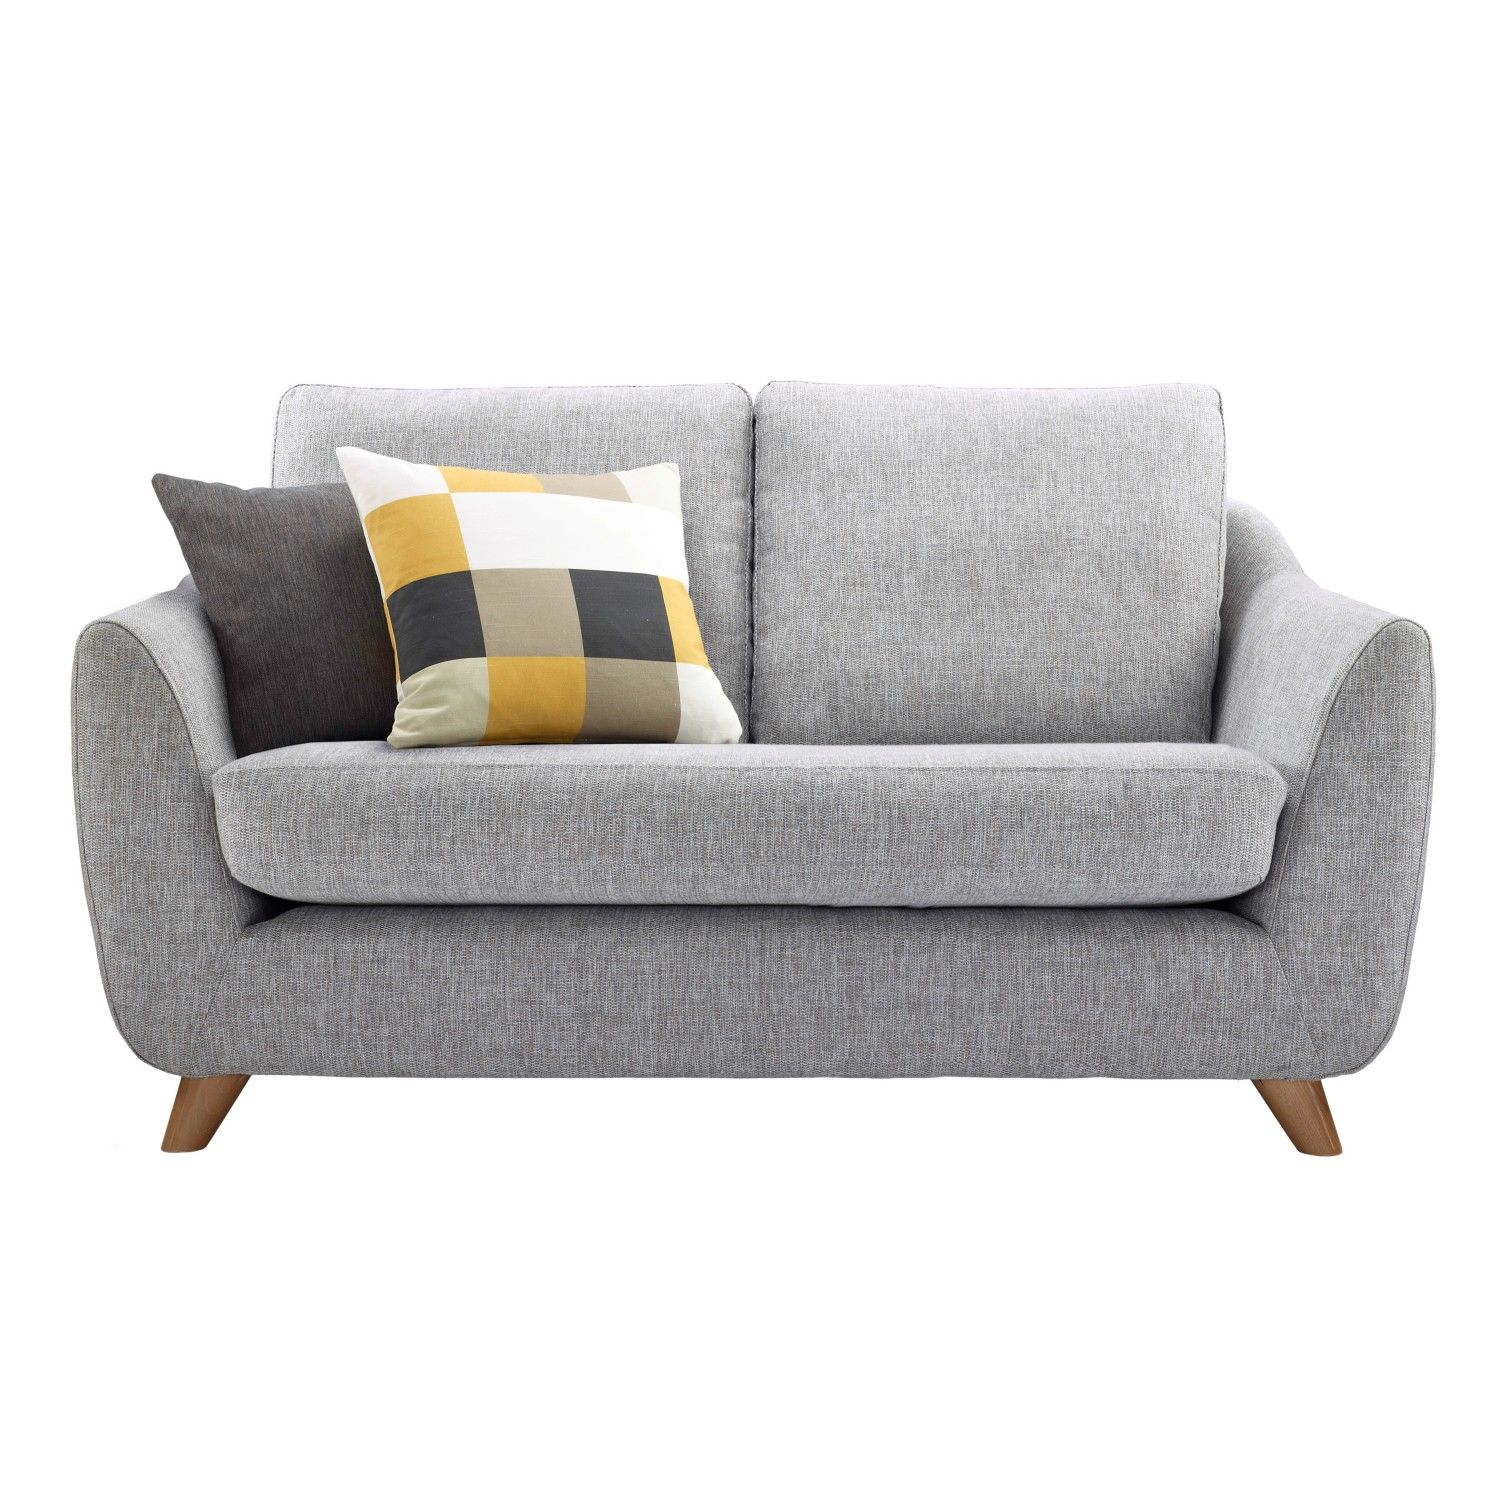 Create New Atmosphere By Placing Small Sofa Beds Anlamli Net In 2020 Cheap Small Sofa Small Sofa Sofas For Small Spaces